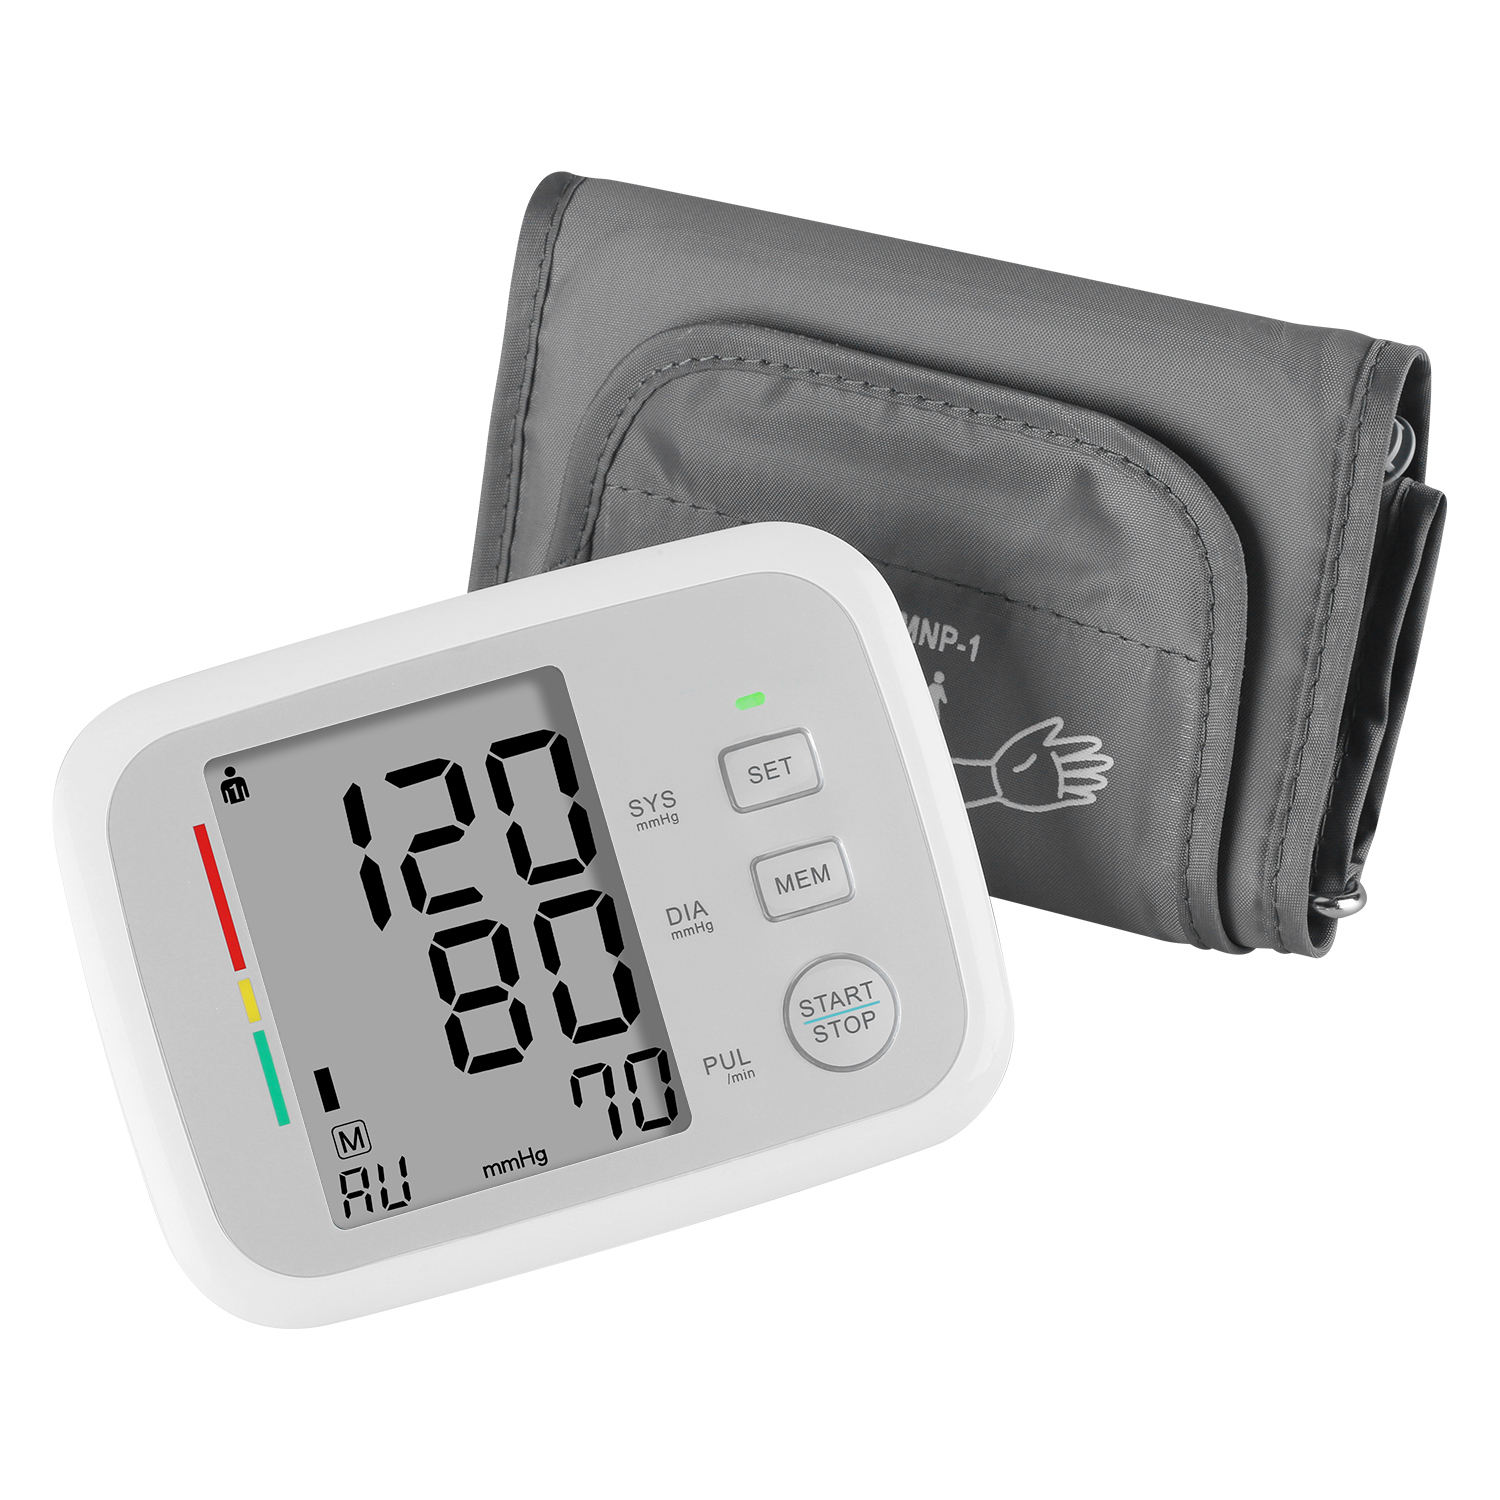 Medical Automatic Electronic Digital Sphygmomanometer Blood Pressure Monitor Upper Arm Factory Price